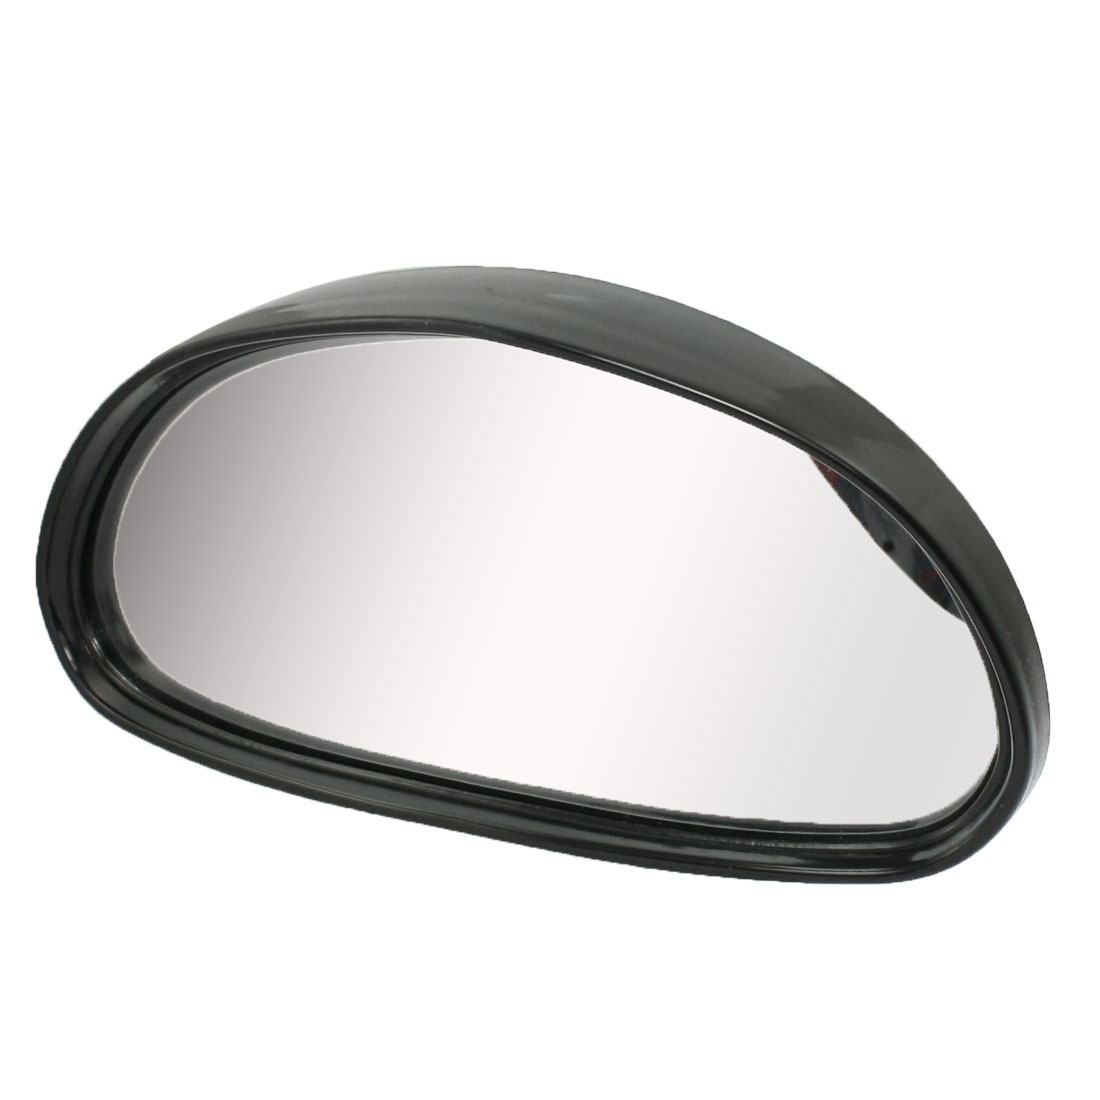 Adjustable Side View Rearview Blind Spot Mirror Black for Car Truck